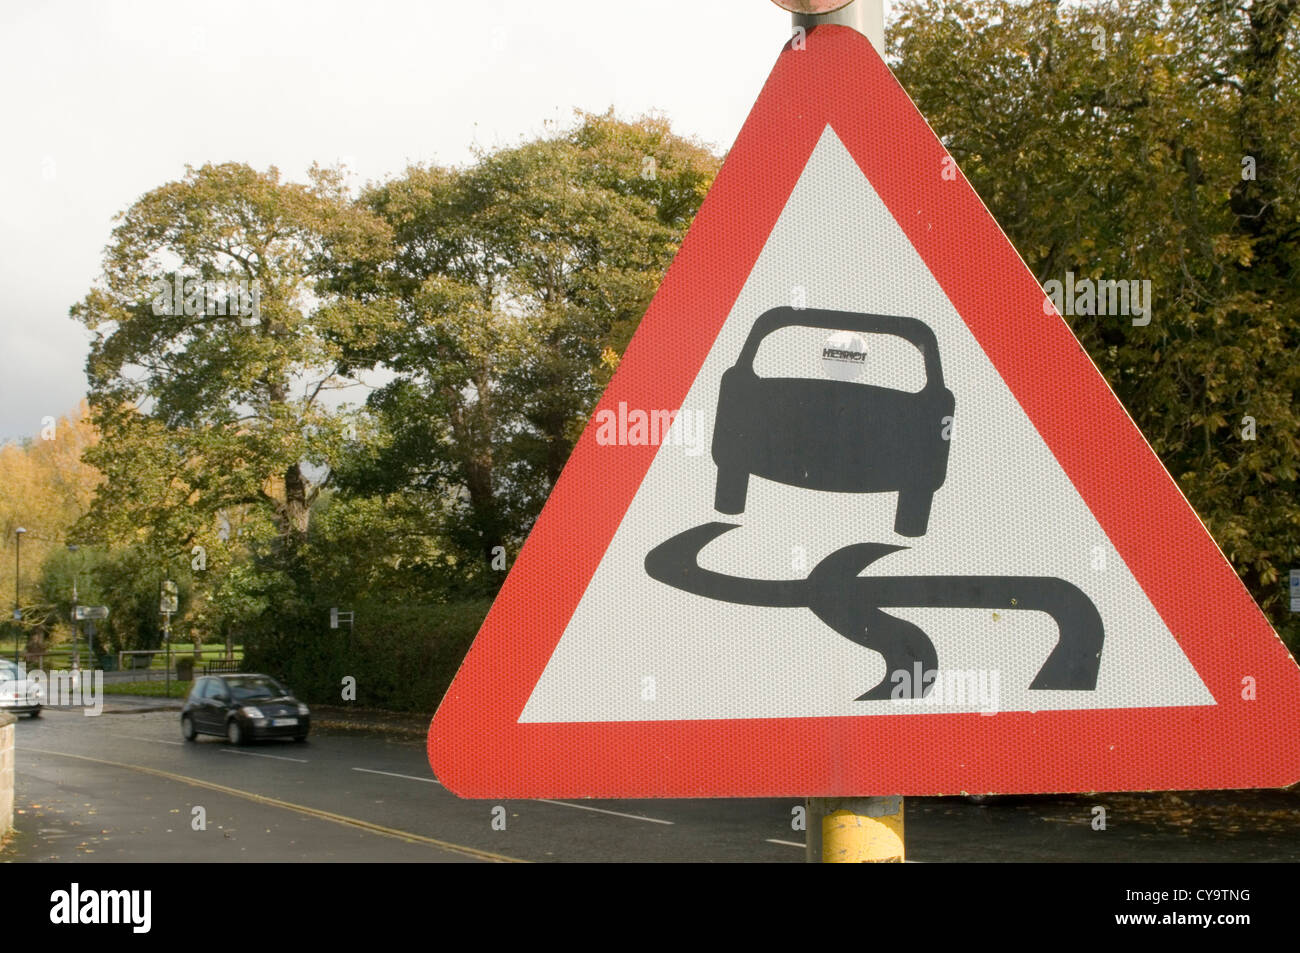 slippery roadsign road sign signs roadsigns coefficient of friction skid skidding skiddy slide drift drifting grip - Stock Image